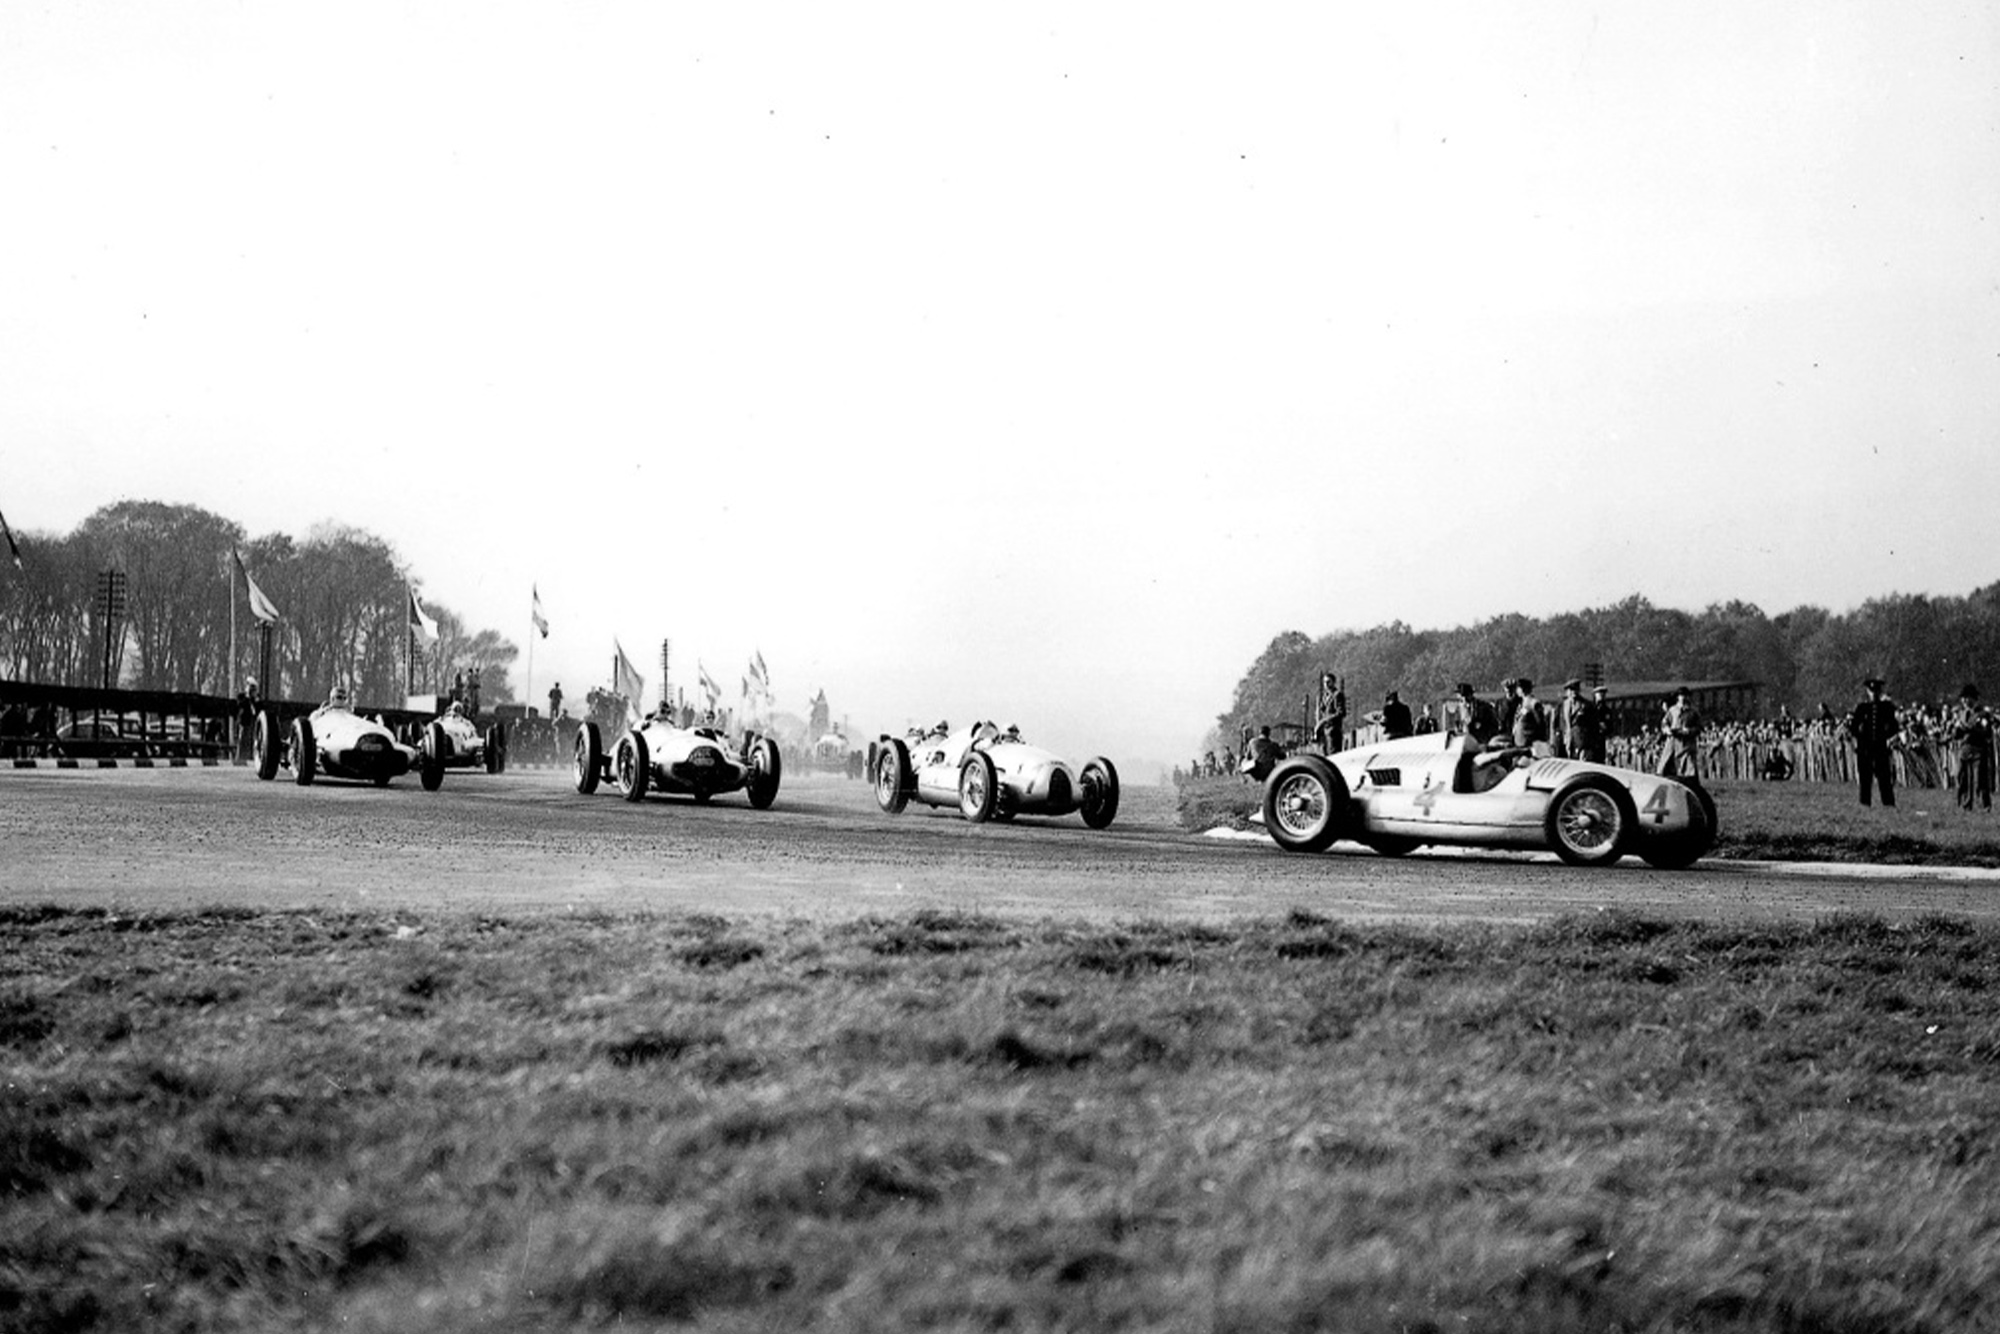 The Mercedes and Auto Unions during the 1938 British Grand Prix